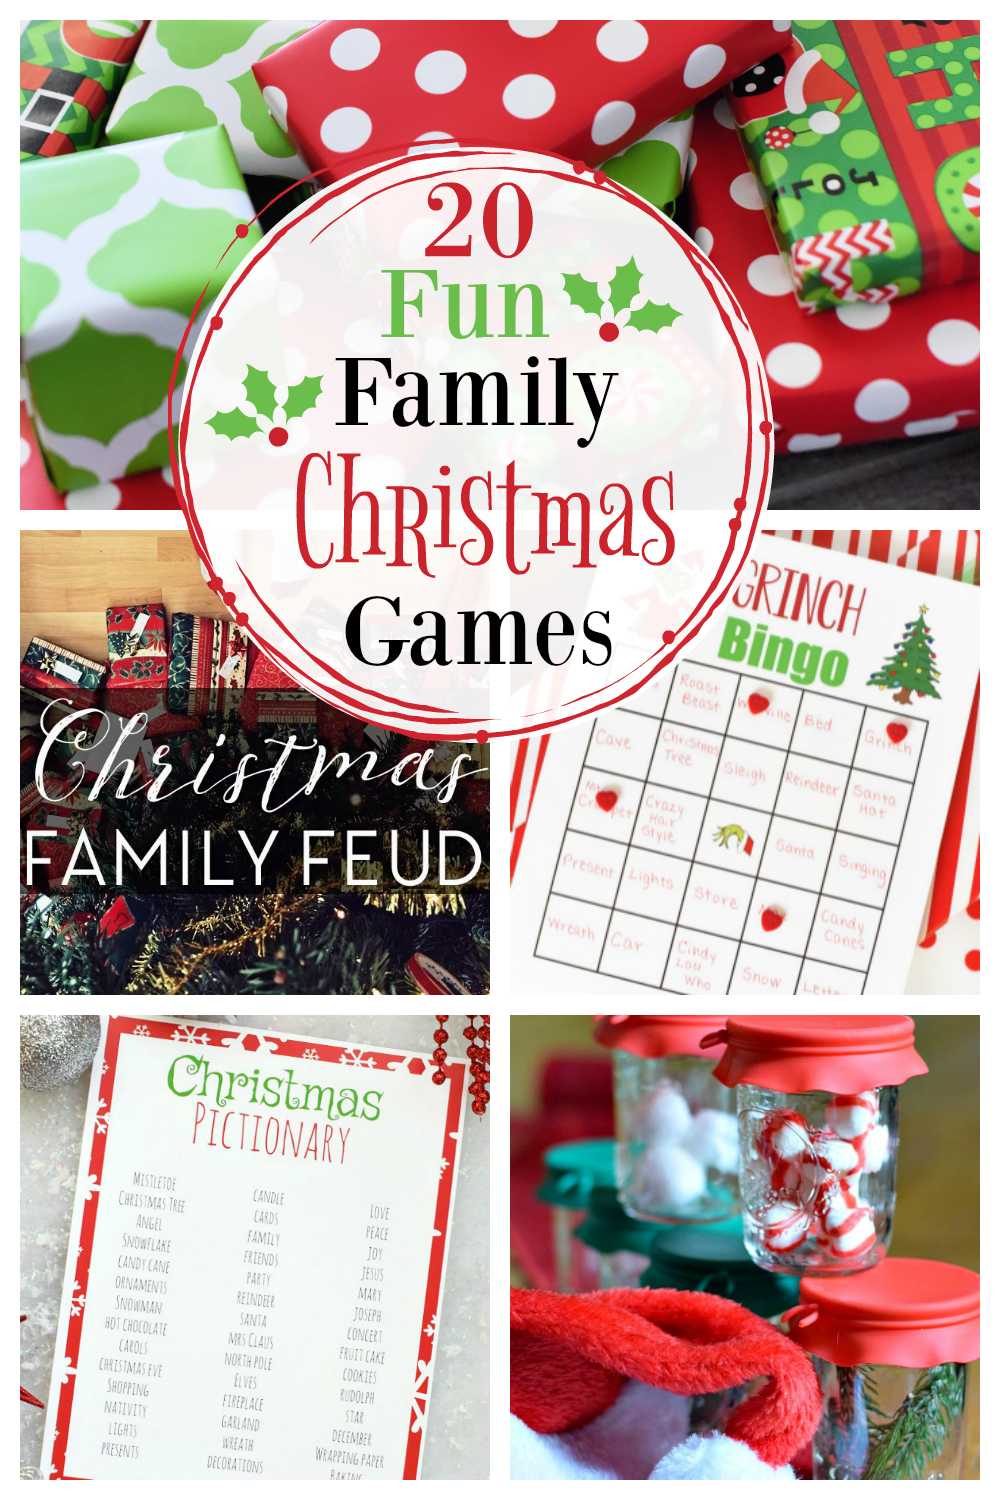 20 Fun Family Christmas Games! We have so many fun and simple Christmas games for your next holiday party! #fungames #Christmasgames #games #Christmaspartygames